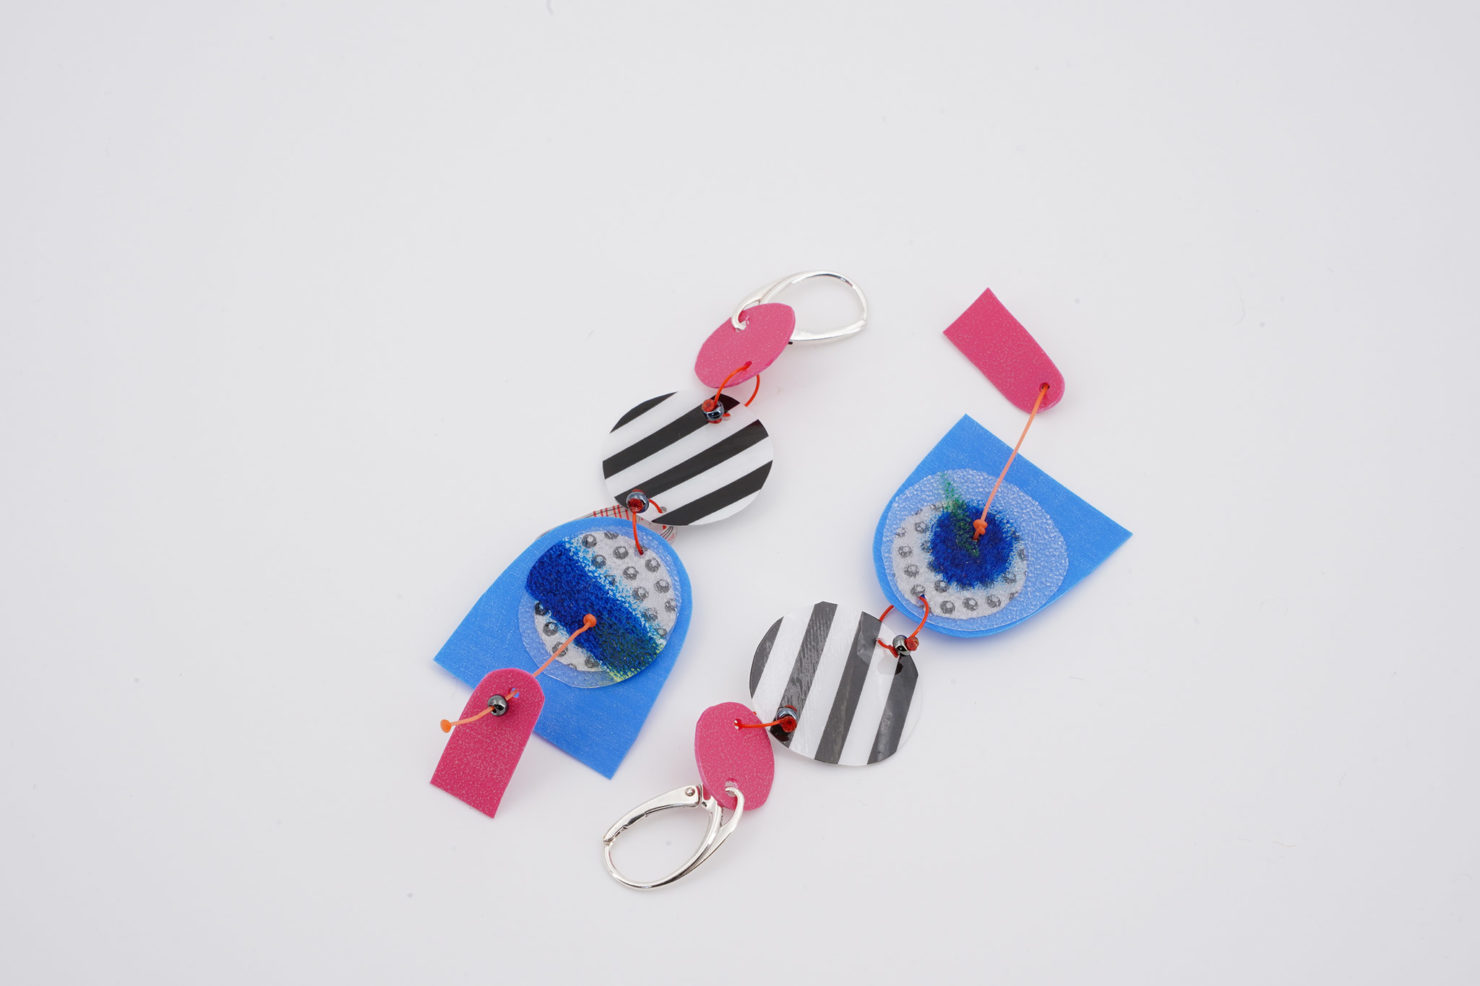 HANDMADE EARRINGS WITH CUTTED RECYCLED PLASTIC-DOLL IS COOL